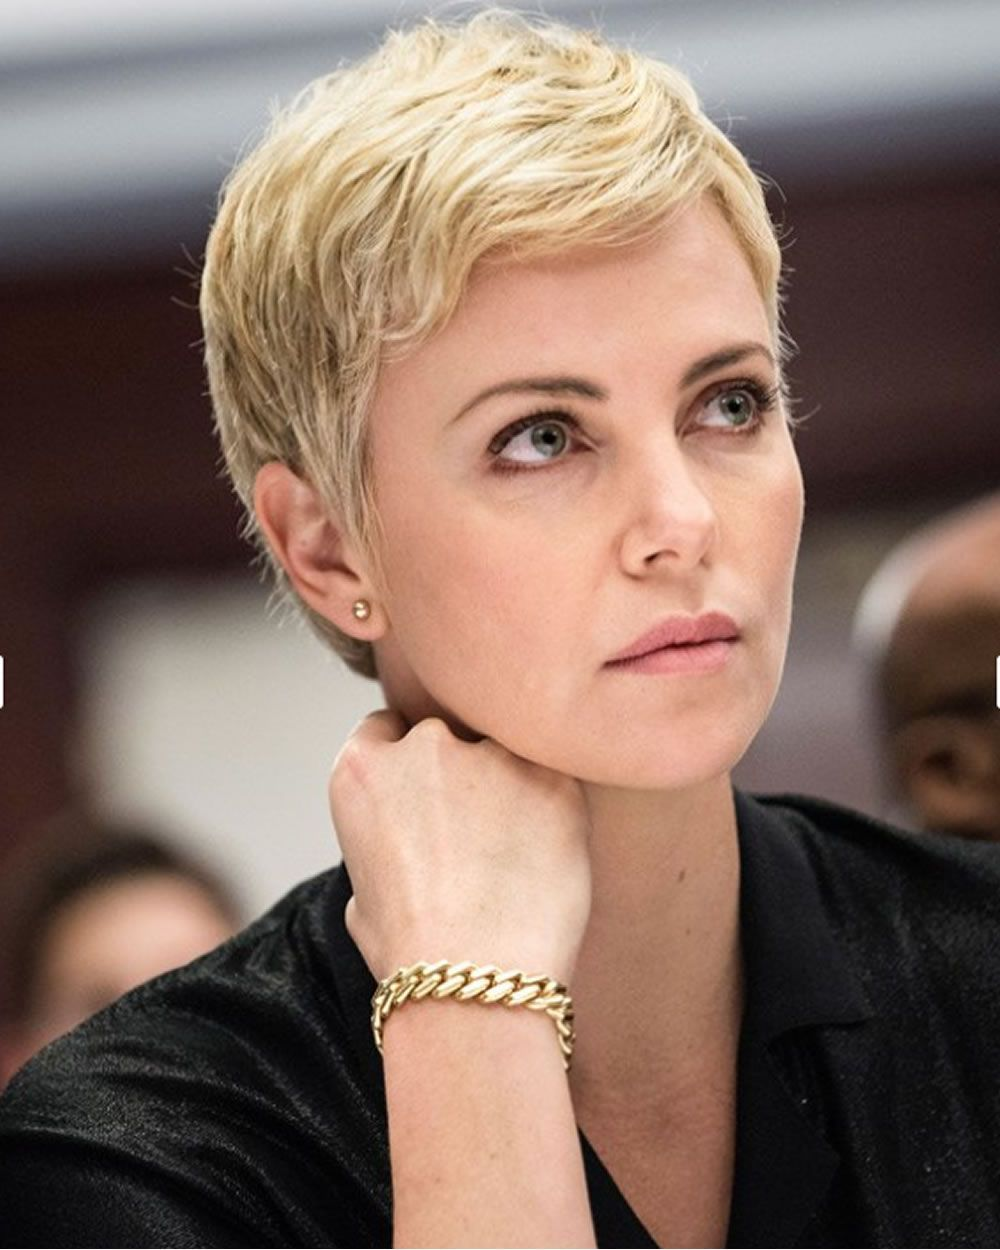 29 Pixie Haircuts For Fine Thin Hair Over 50 Hairstyles Ideas Short Pixie Haircuts Pixie Haircut Haircuts For Over 60